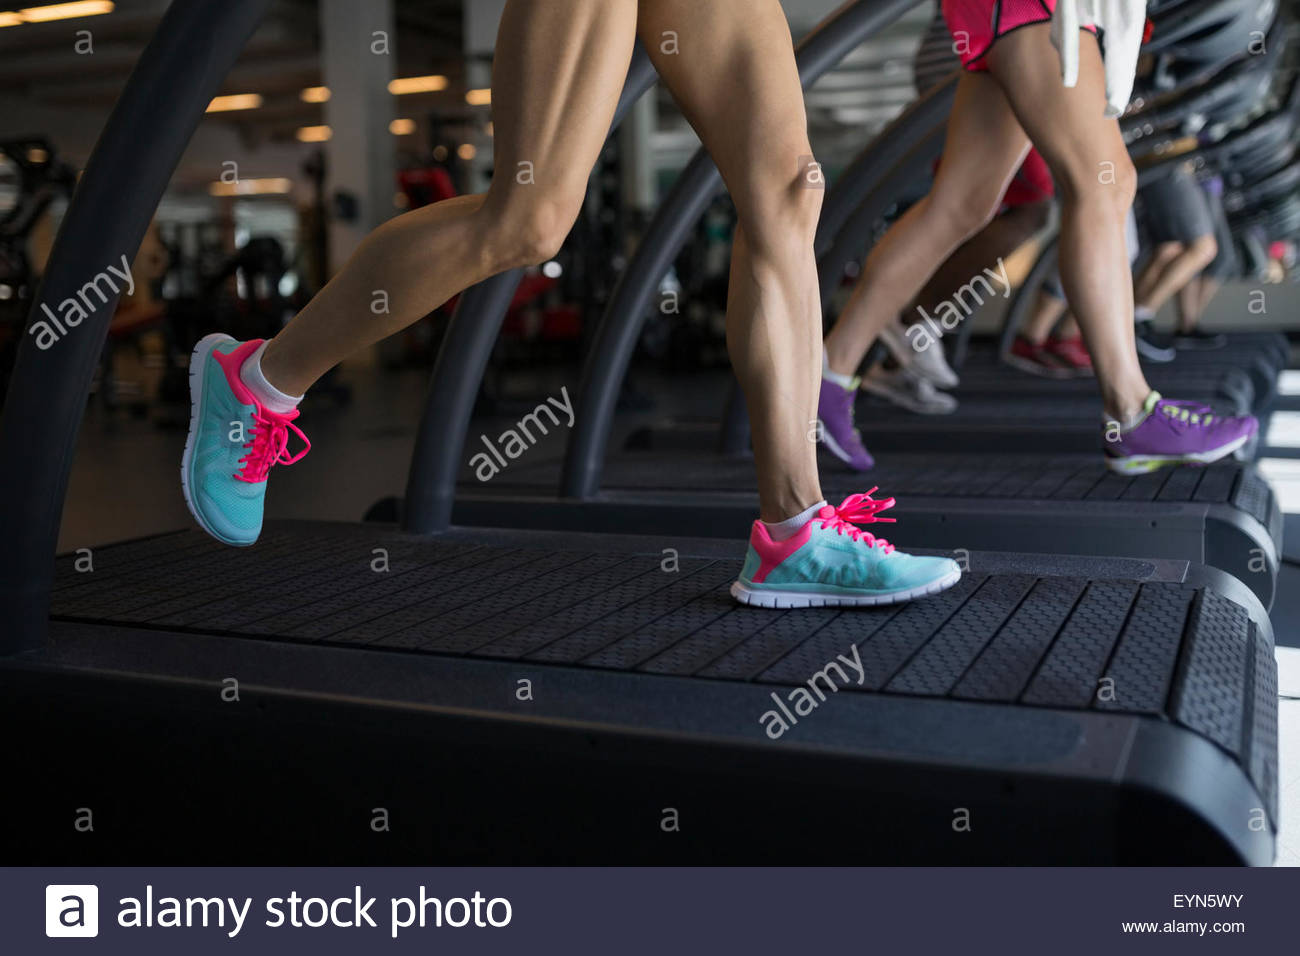 Legs of women running on treadmills at gym - Stock Image